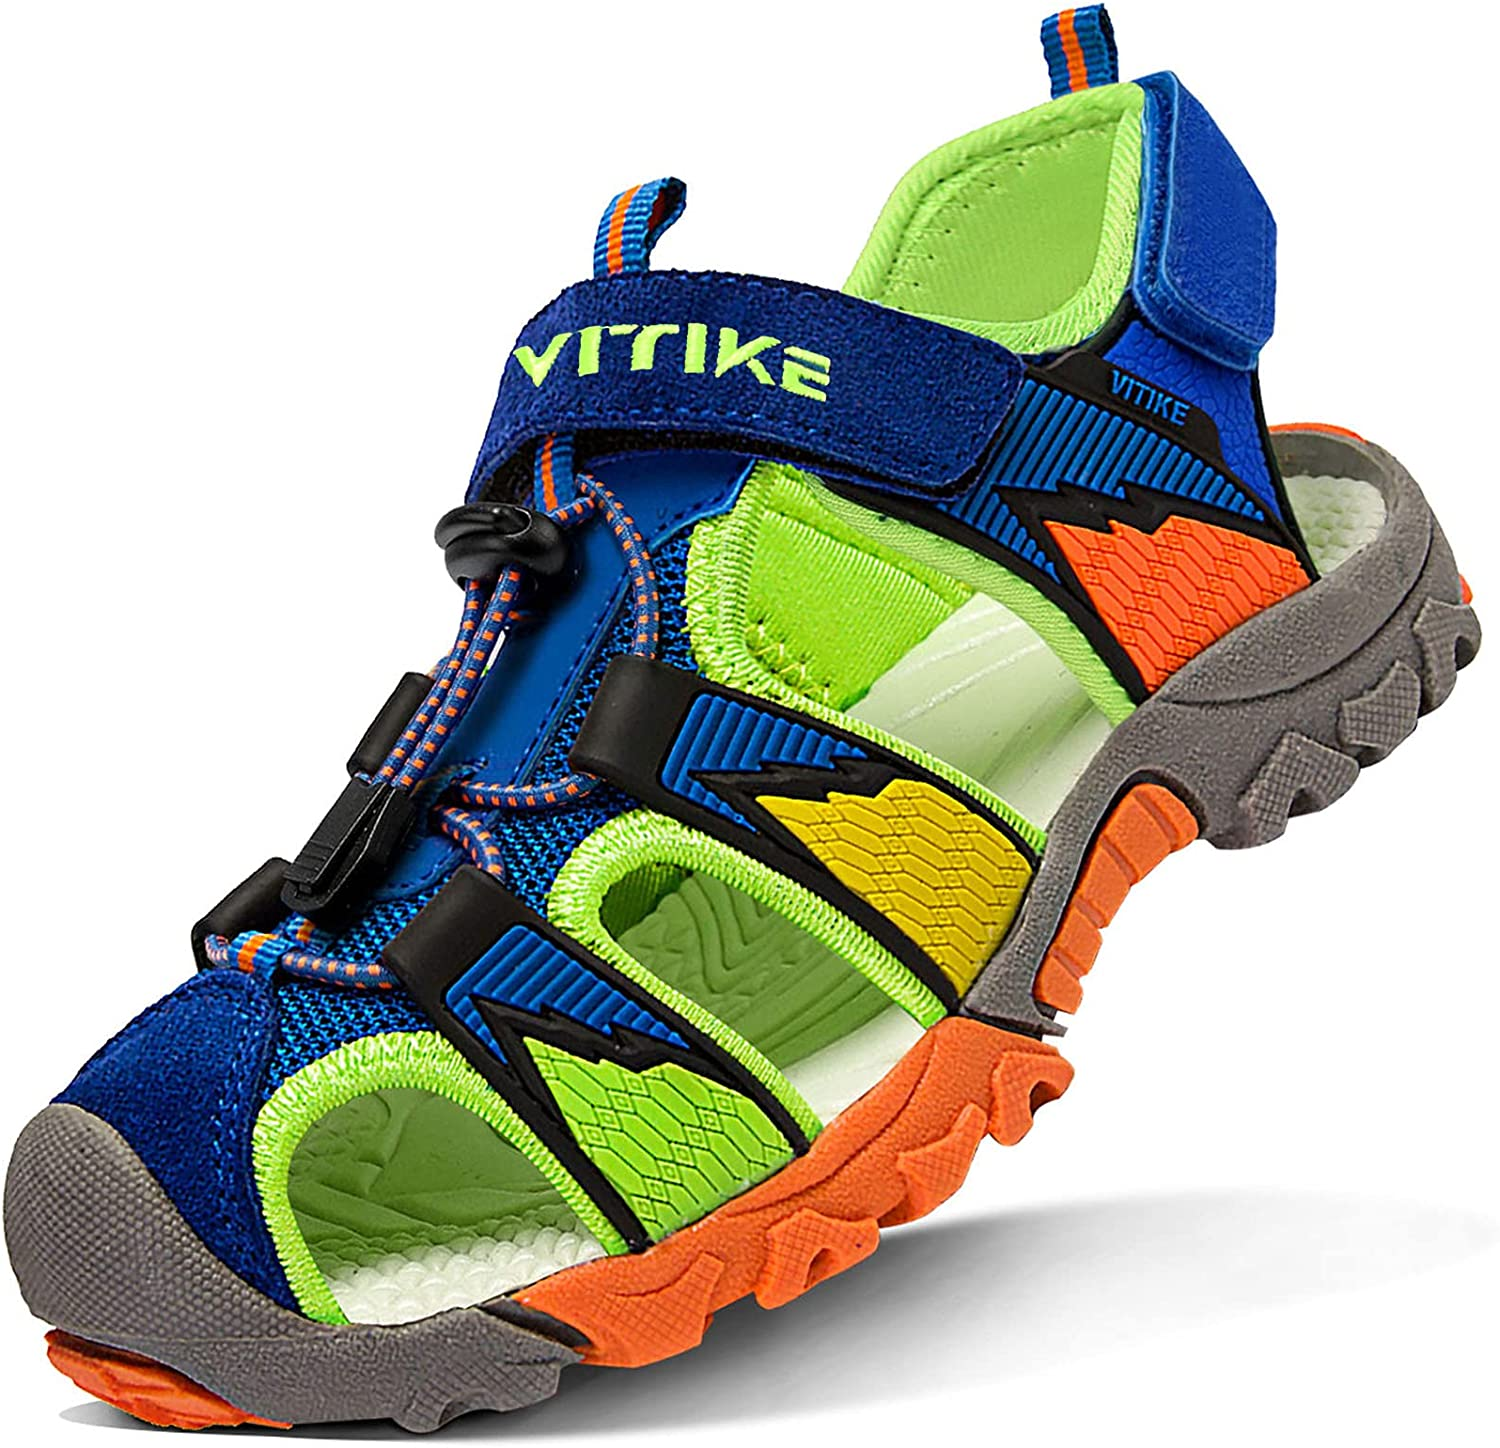 VITIKE Boys Sandals Toe Closed OFFicial site Austin Mall